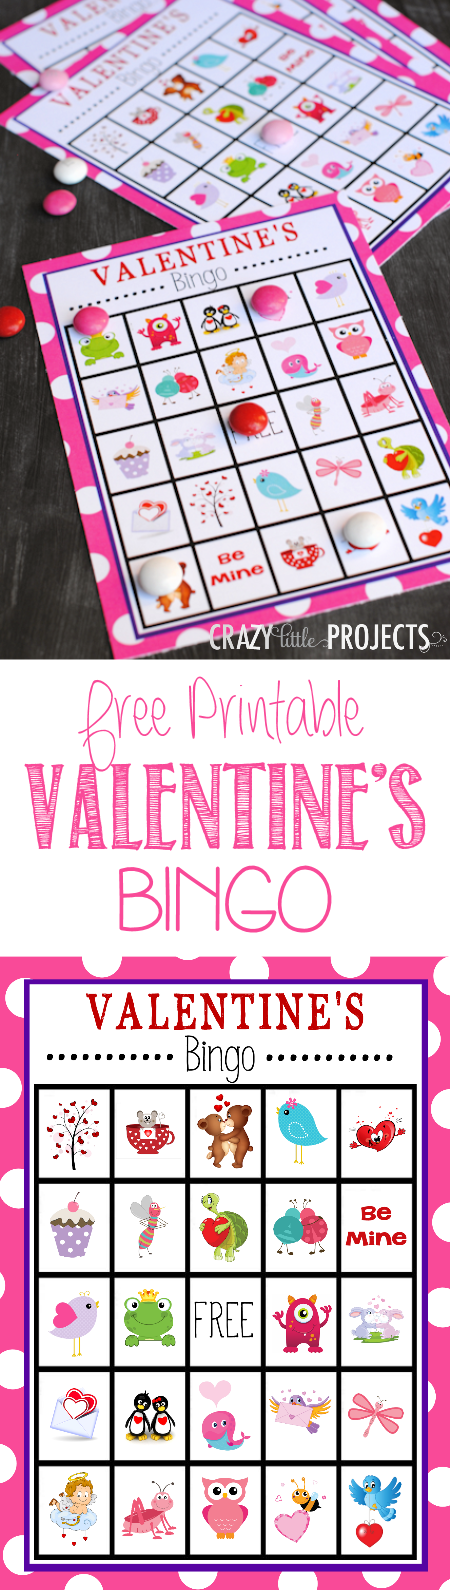 Free Printable Valentineu0027s Day Bingo Game For Valentineu0027s Parties